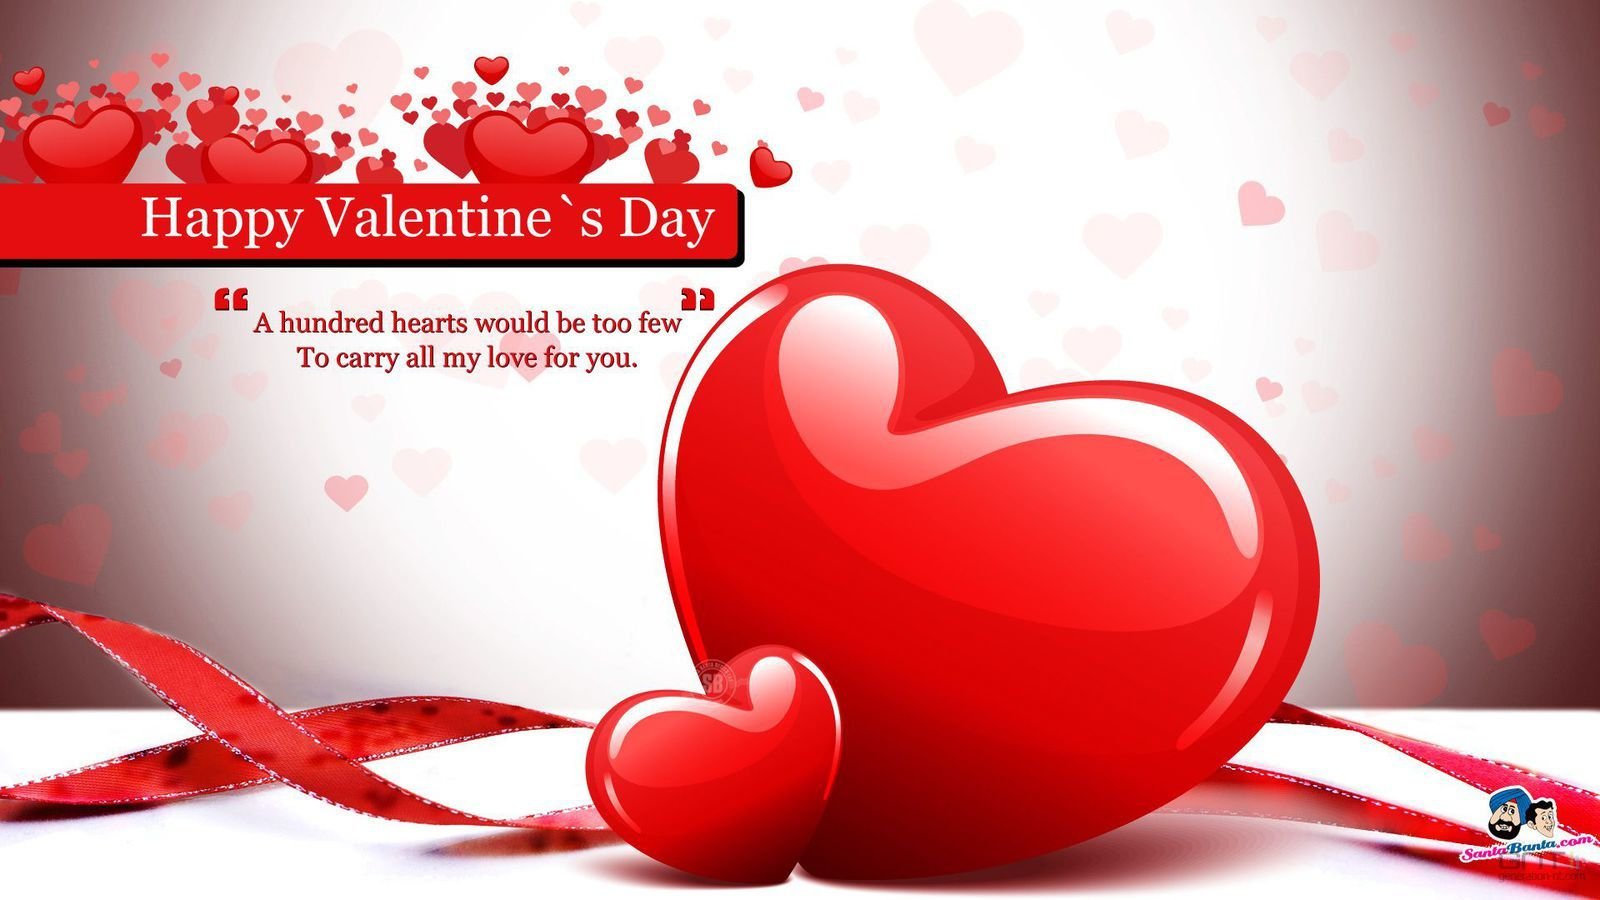 Happy Valentines Day Wallpaper Free Le Blog De Lemondedesgifs